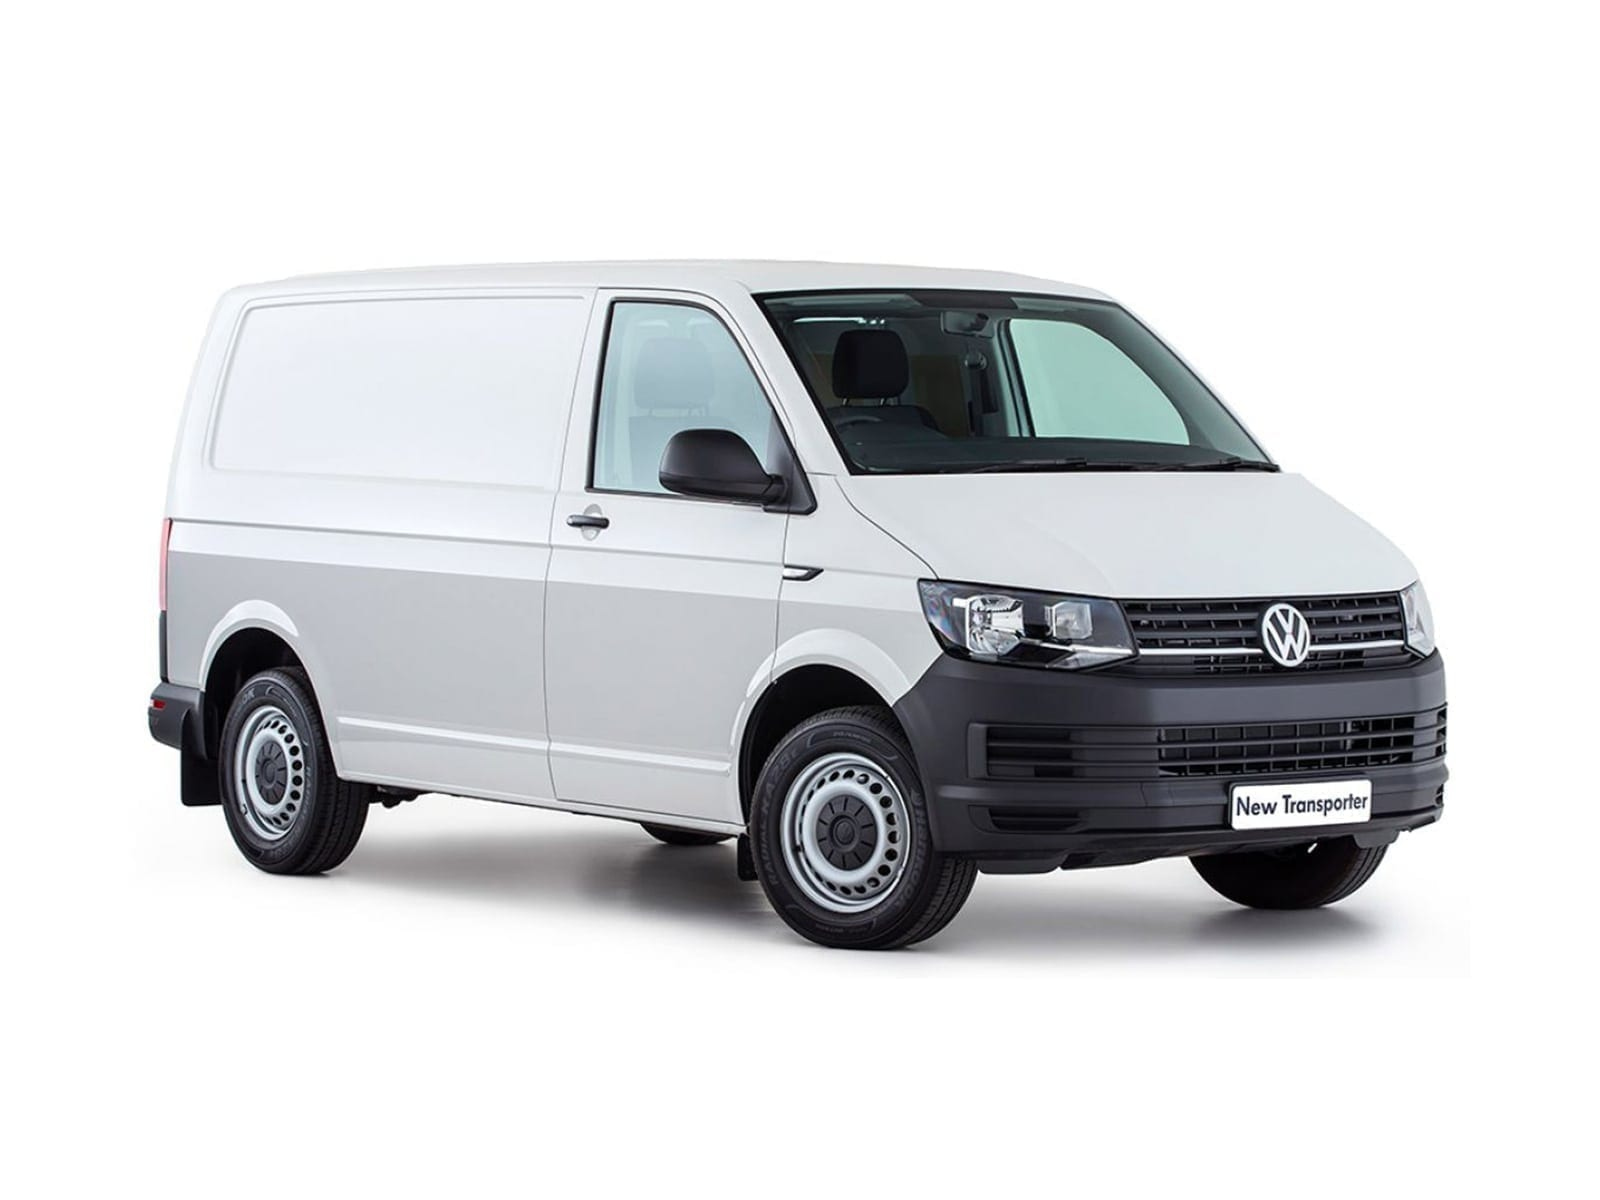 Mercedes Benz Van >> VW Transporter Startline - Affordable and available at Swiss Vans